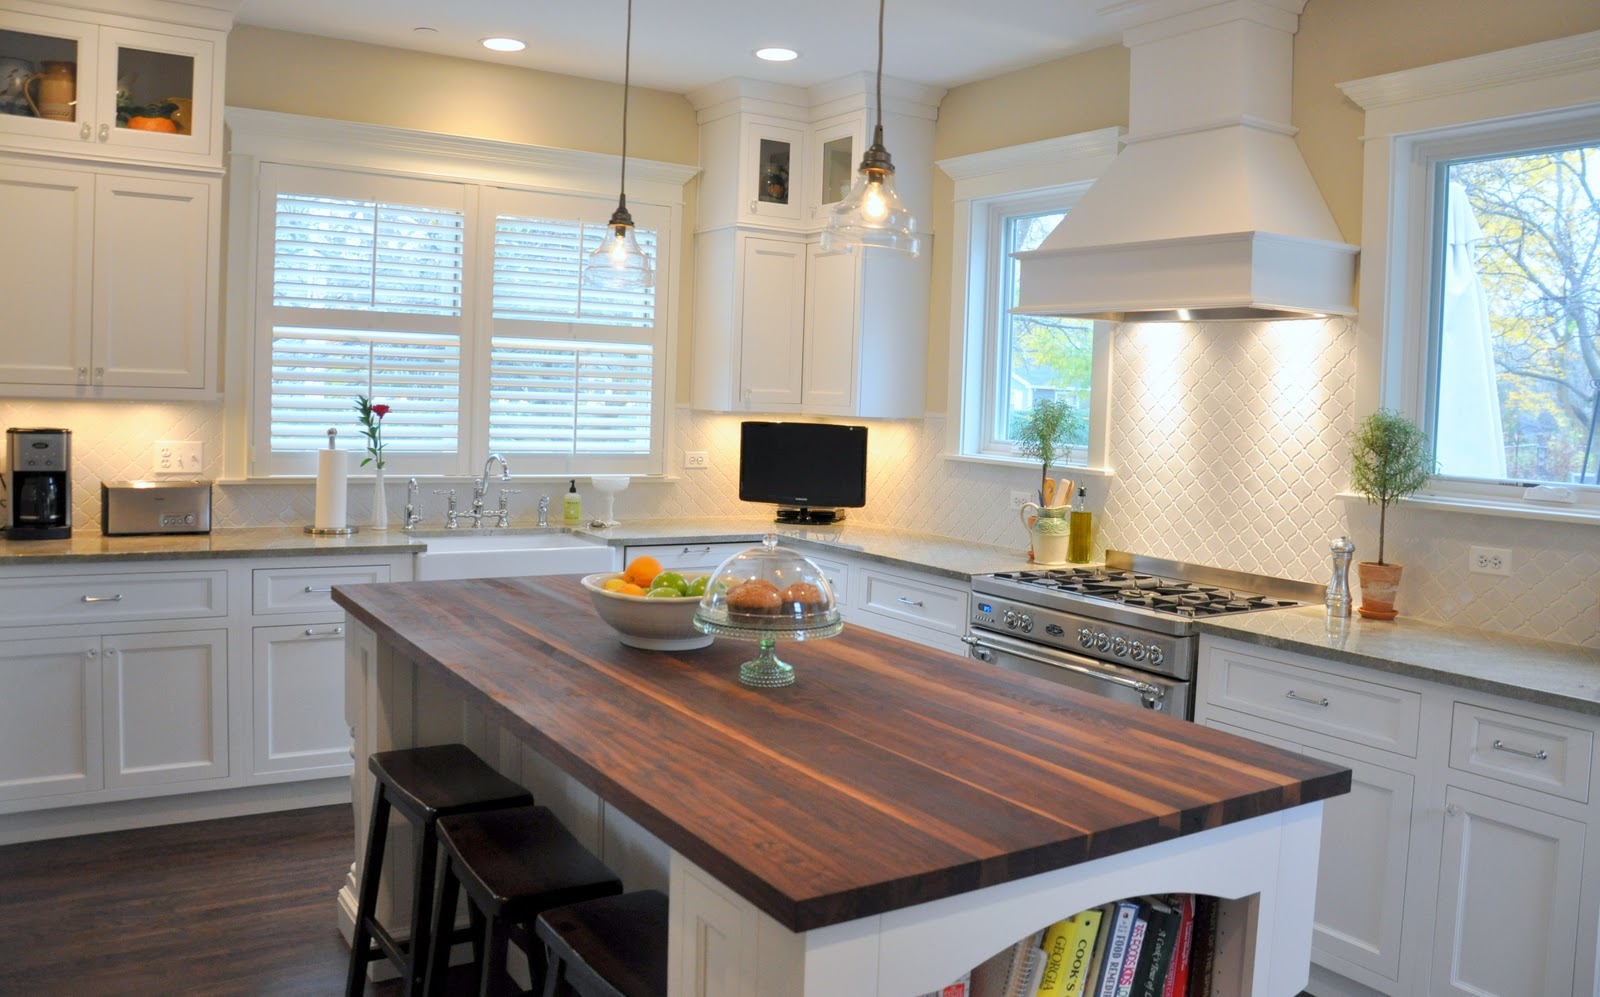 they chose the lantern tile backsplash because it was different than